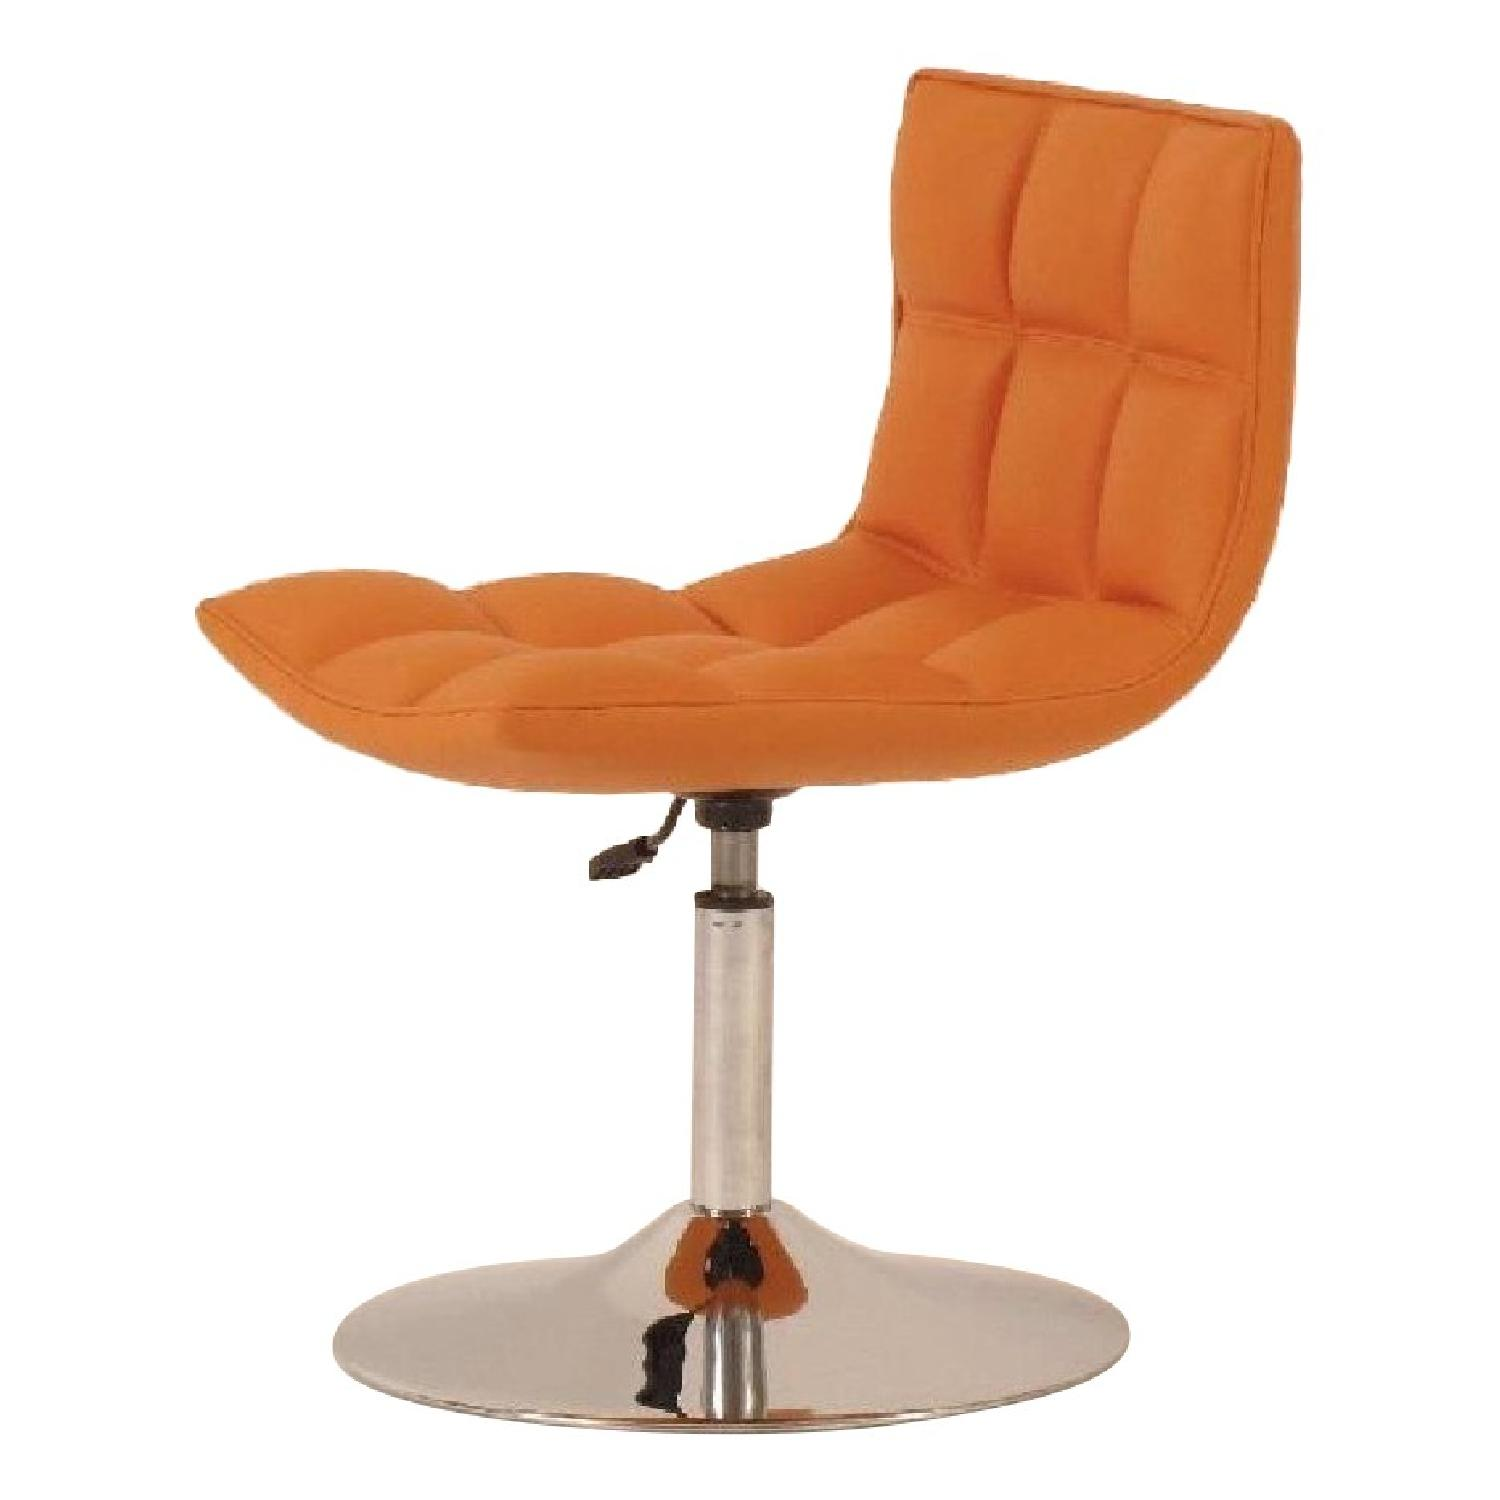 Faux Leather Adjustable Height Swivel Dining Chairs